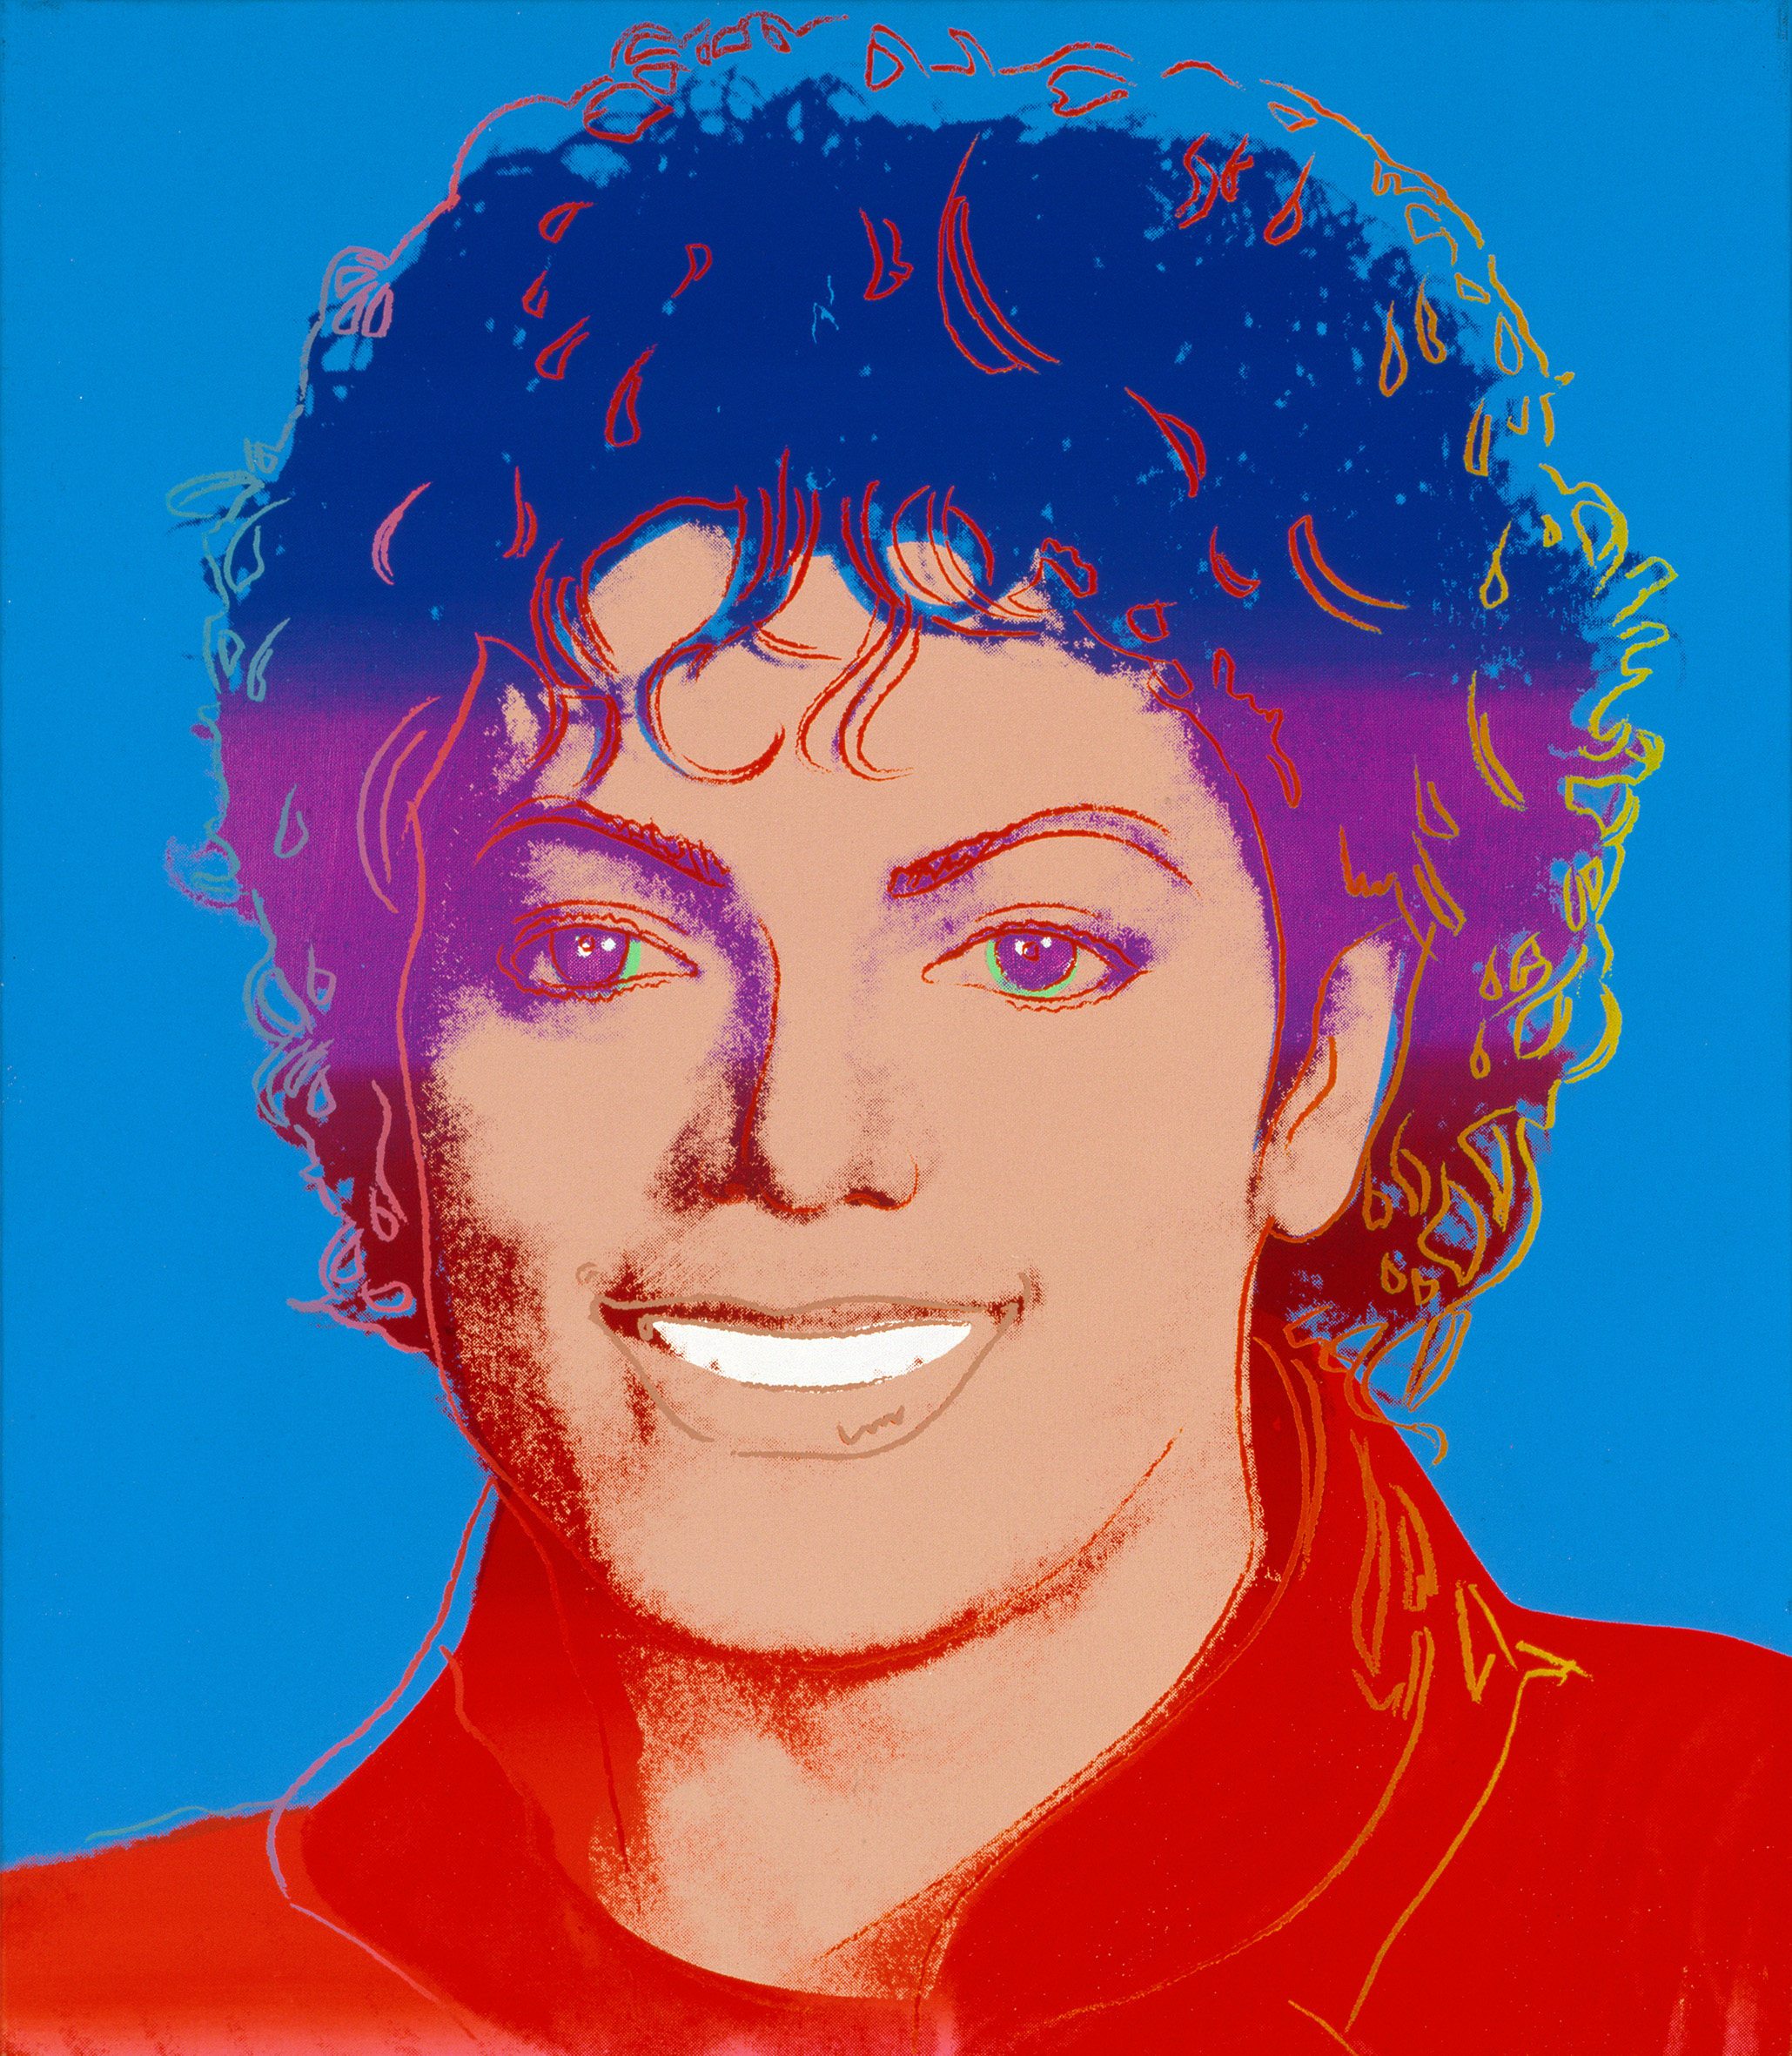 michael_jackson_by_andy_warhol_copie.jpg